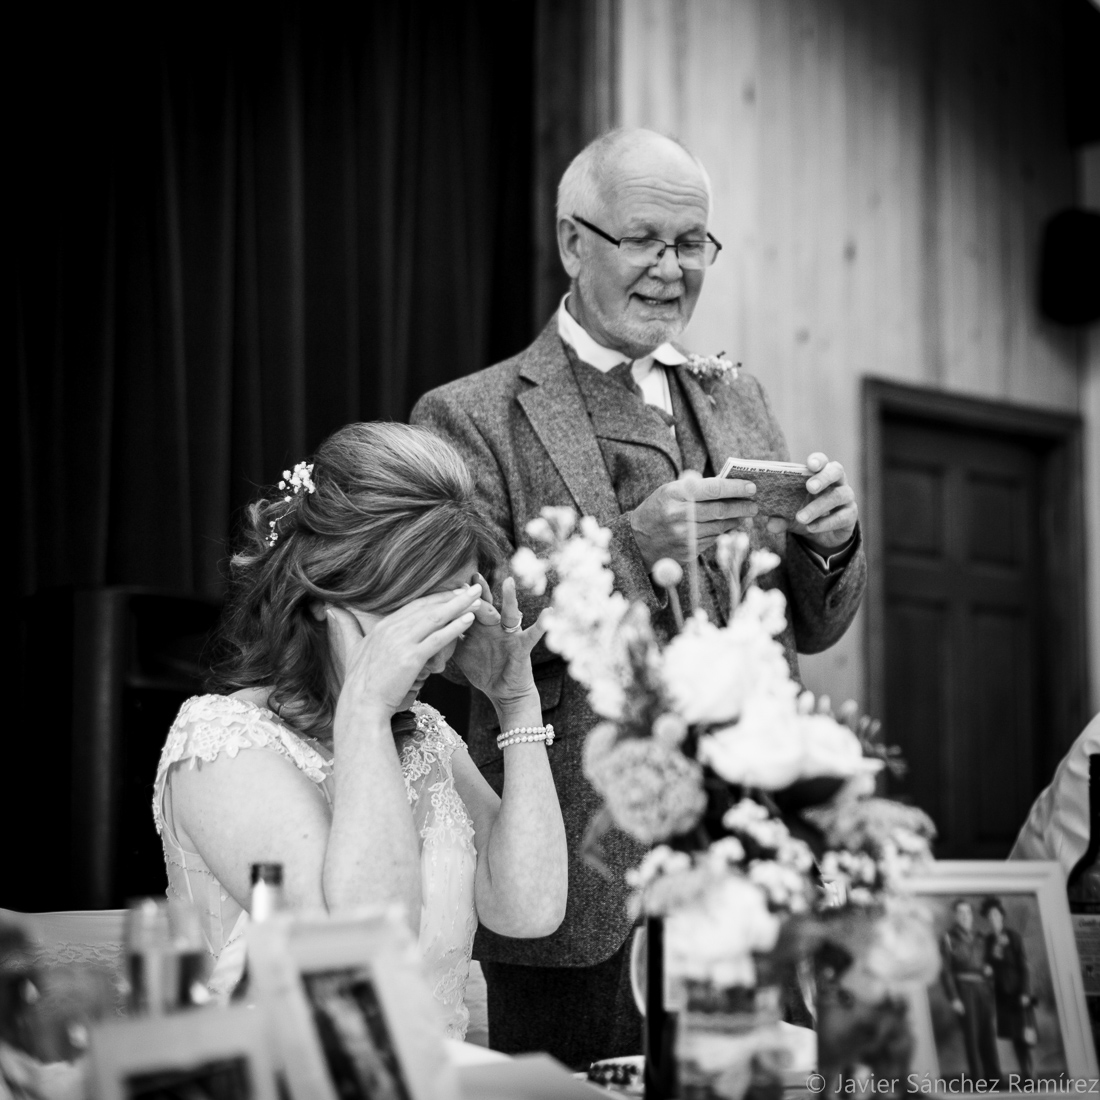 FATHER OF THE BRIDE WEDDING SPEECH. A FAVOURITE PHOTOGRAPH